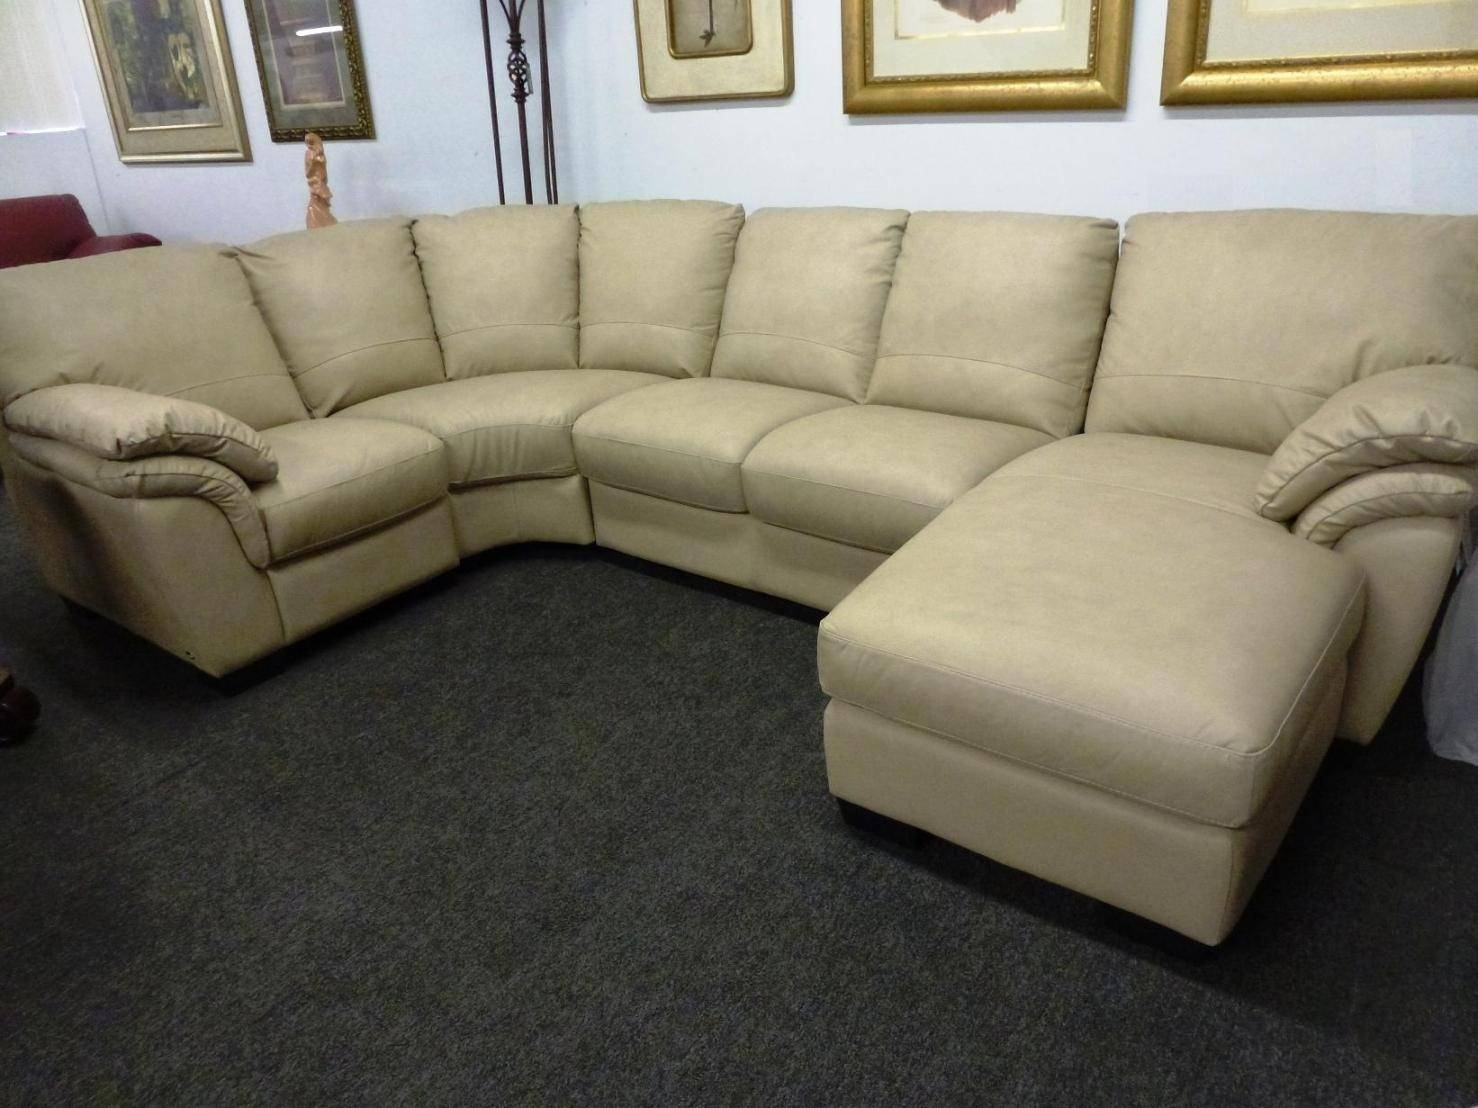 Furniture : Sectional Sofa With Oversized Ottoman. Modern within Sectional Sofa With Oversized Ottoman (Image 4 of 30)